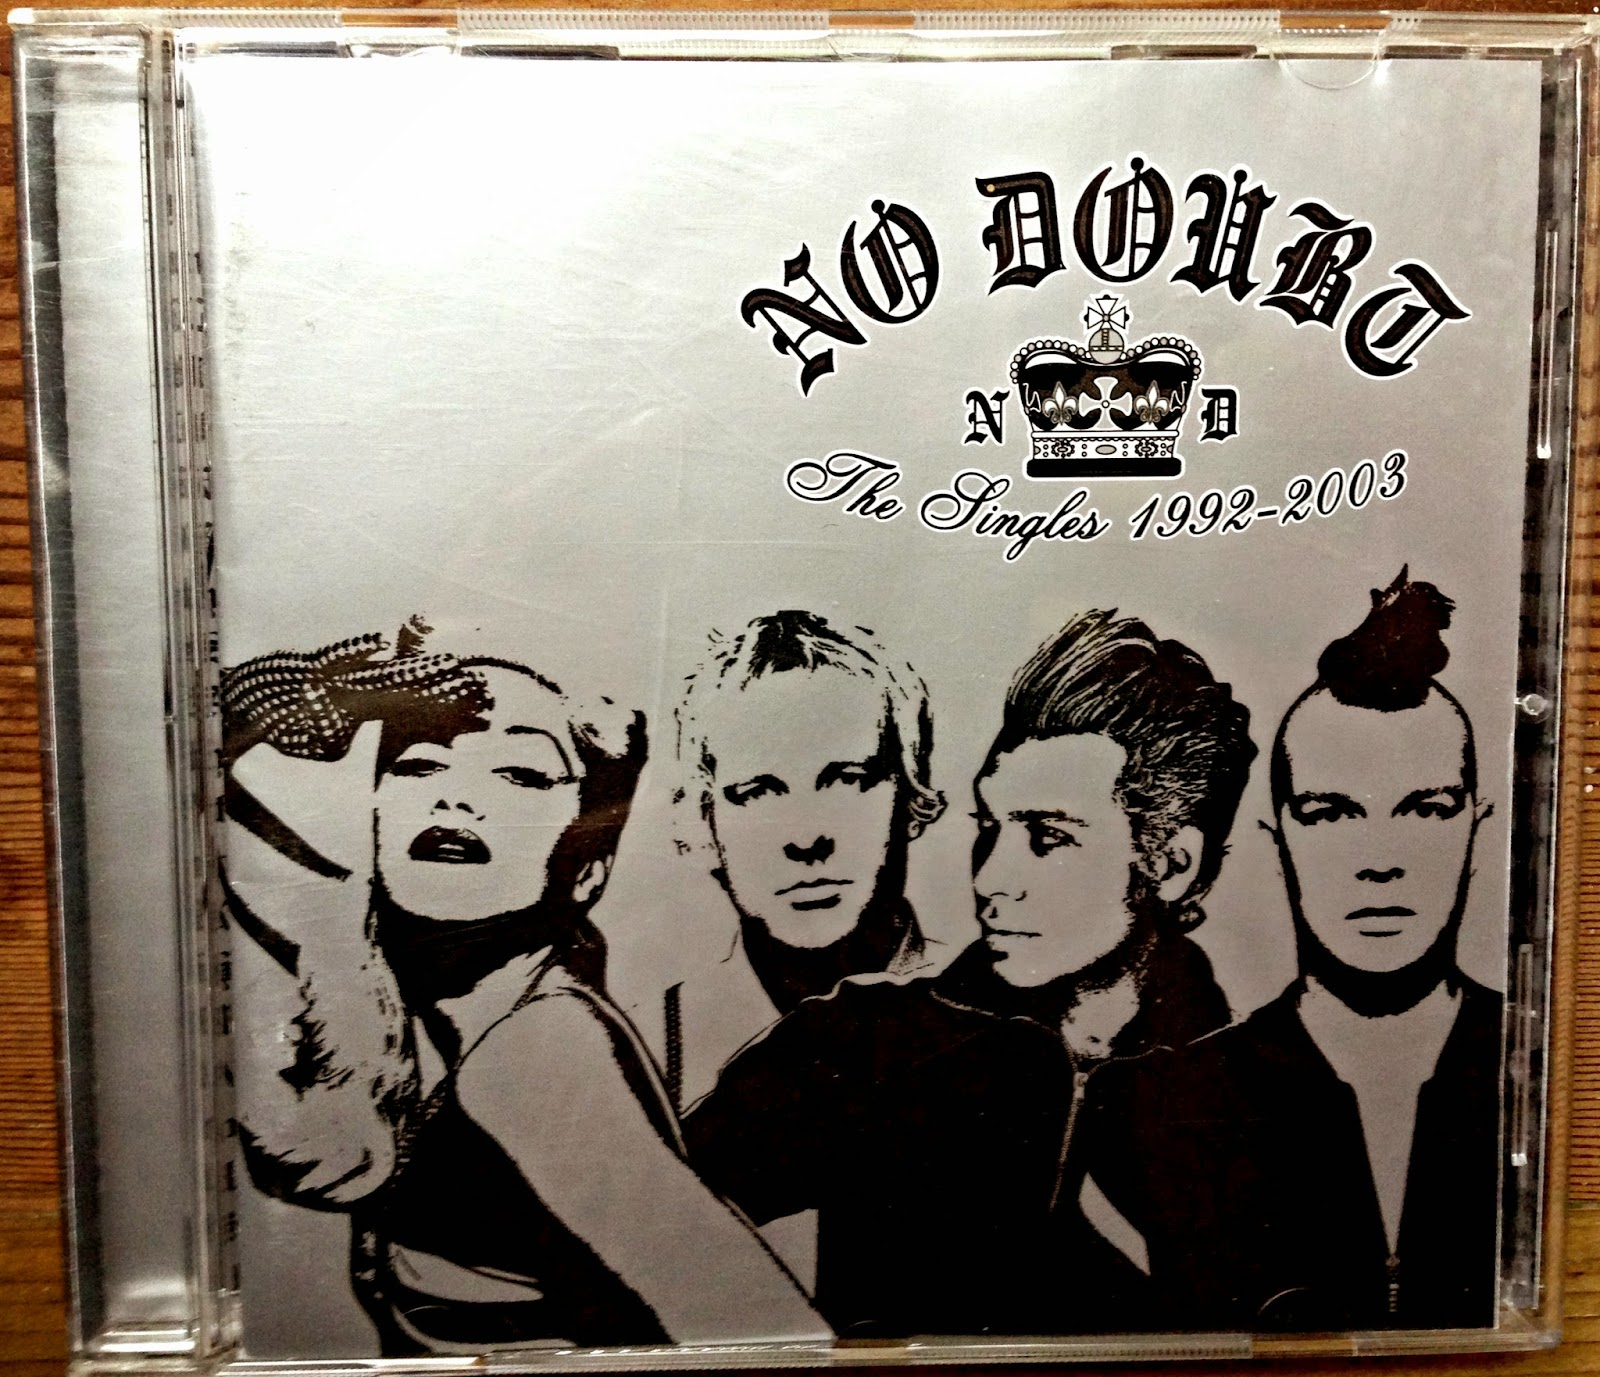 No Doubt The Singles 1992-2003 Album